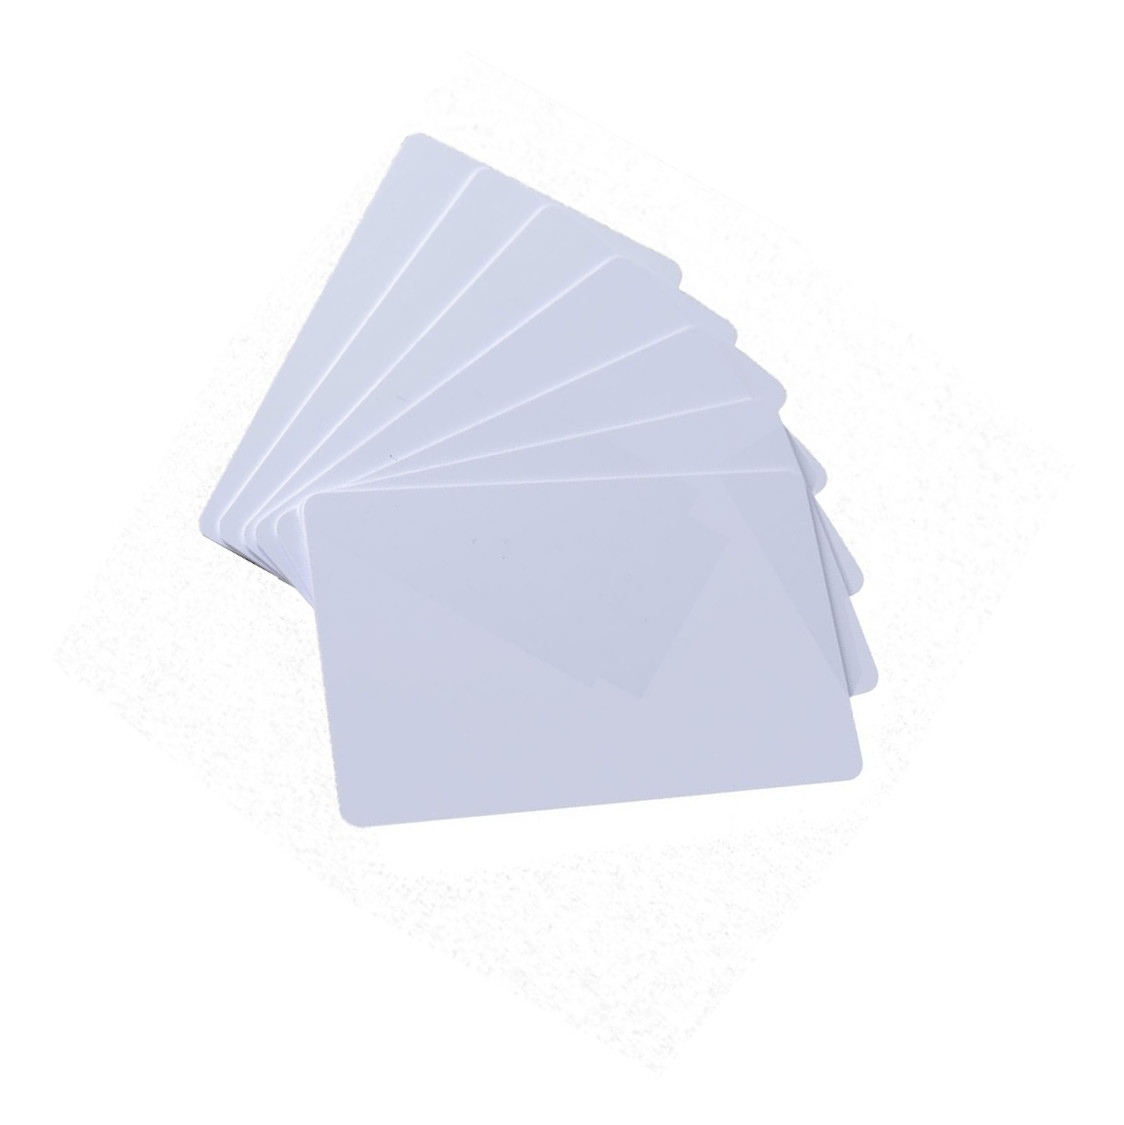 UNBRANDED COMPATIBLE CARDS 1K 50 /& 100 13.56Mhz pack sizes 10